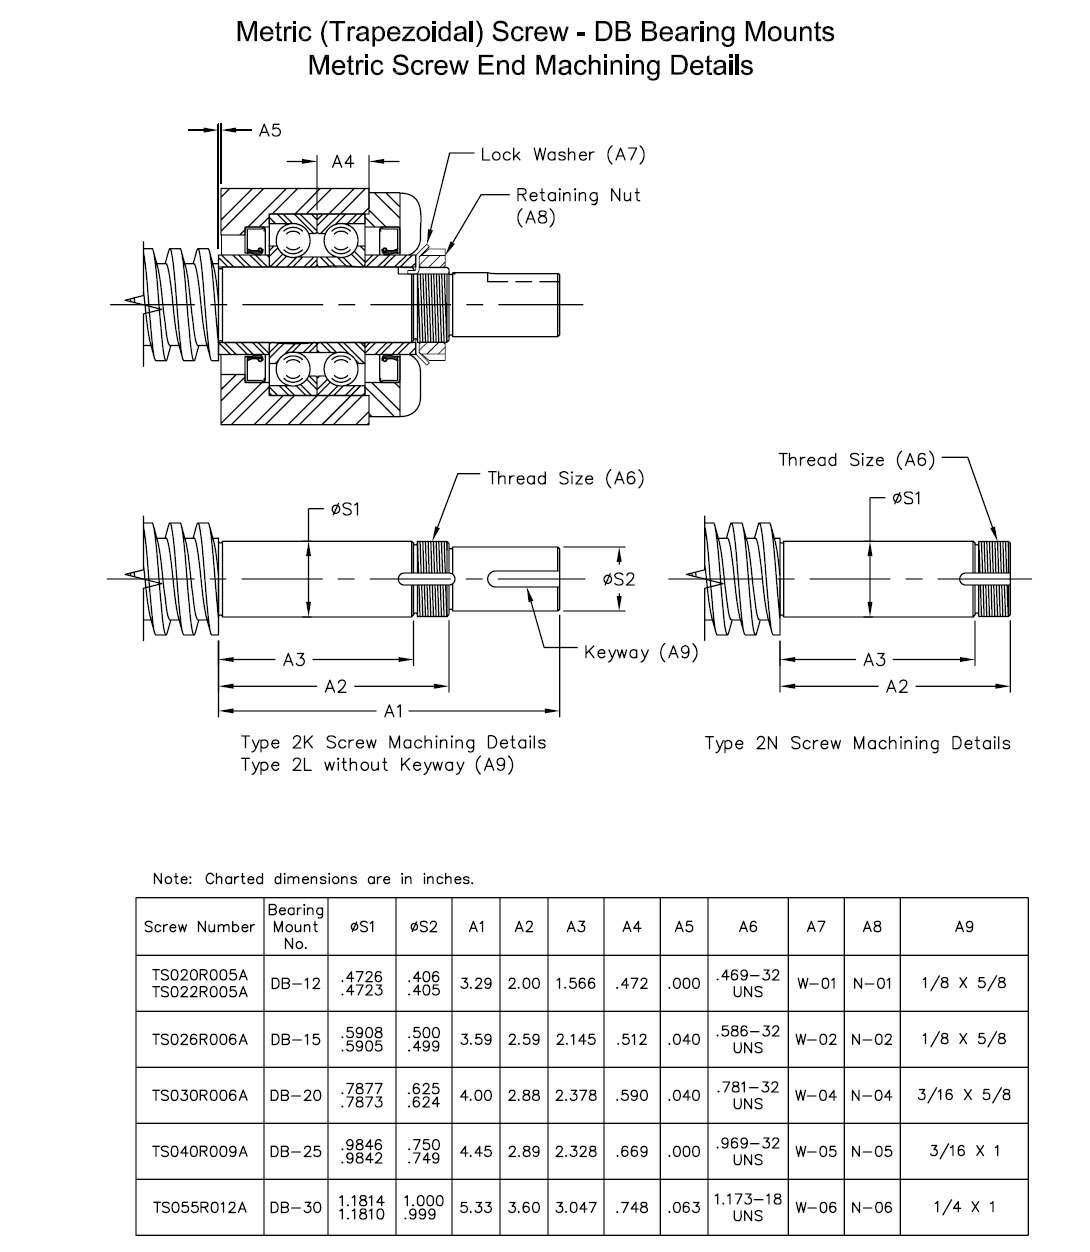 DB Bearing Blocks and Screw End Conditions